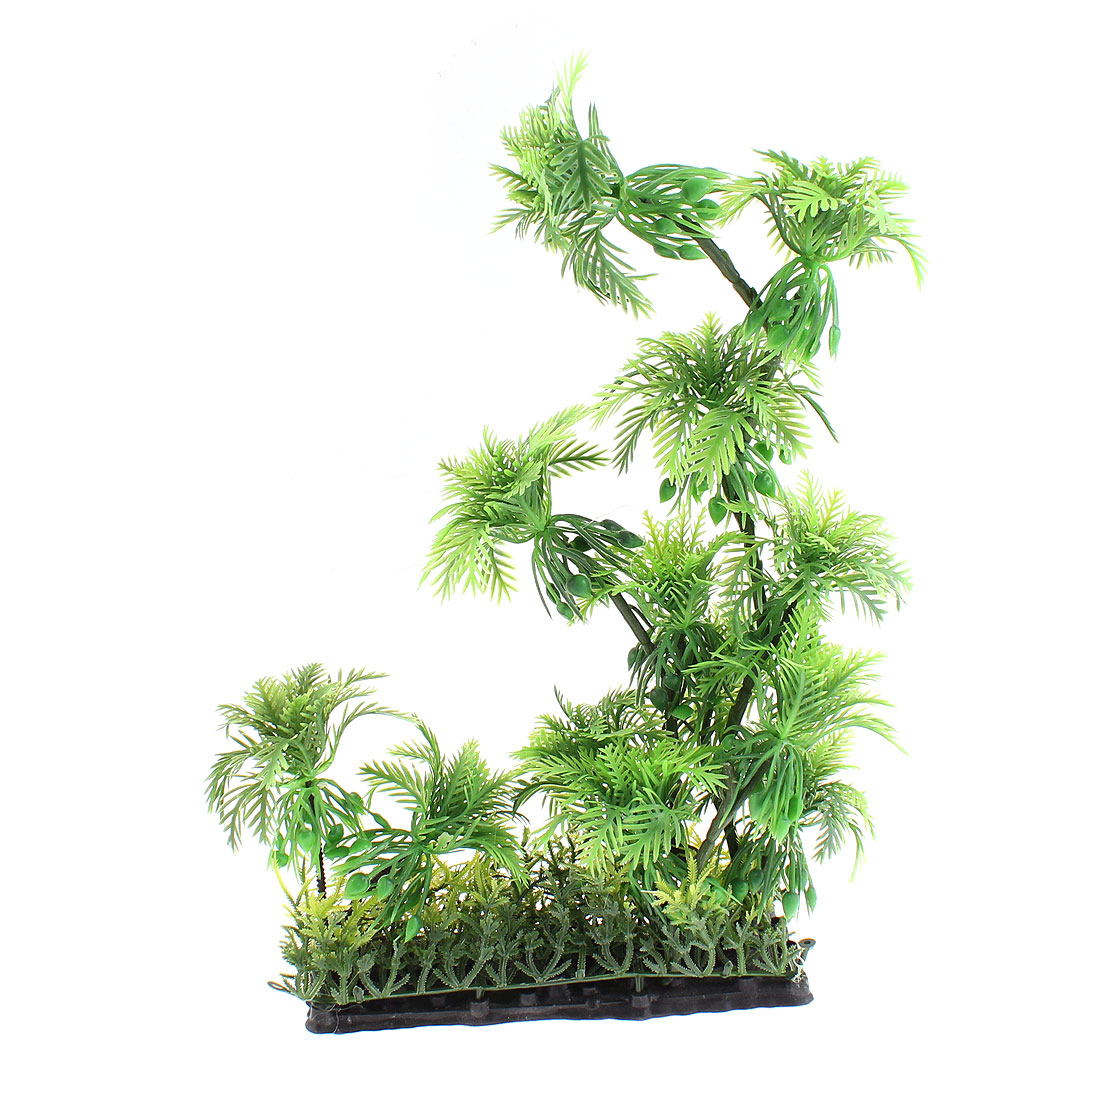 "Aquarium Plastic Emulational Water Tree Plant Decor 10"" High"